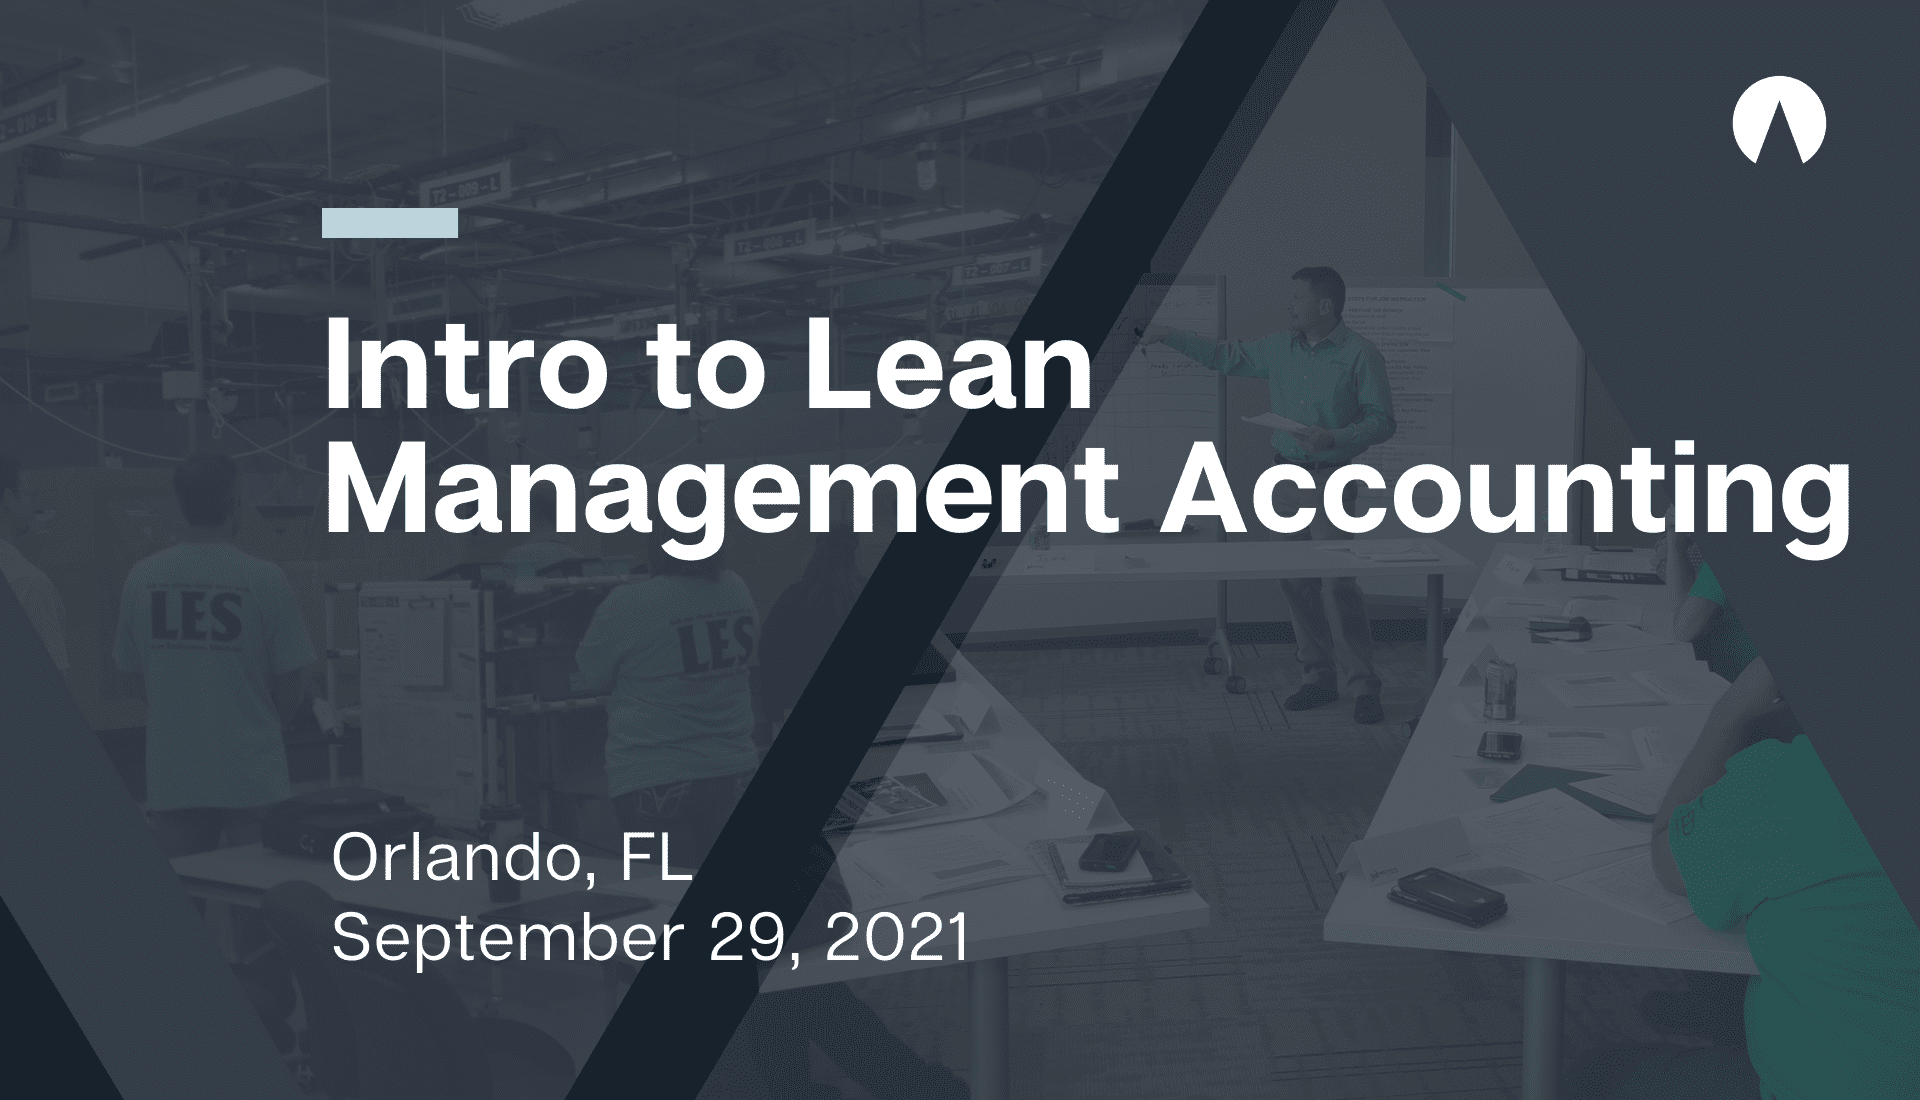 Intro to Lean Management Accounting